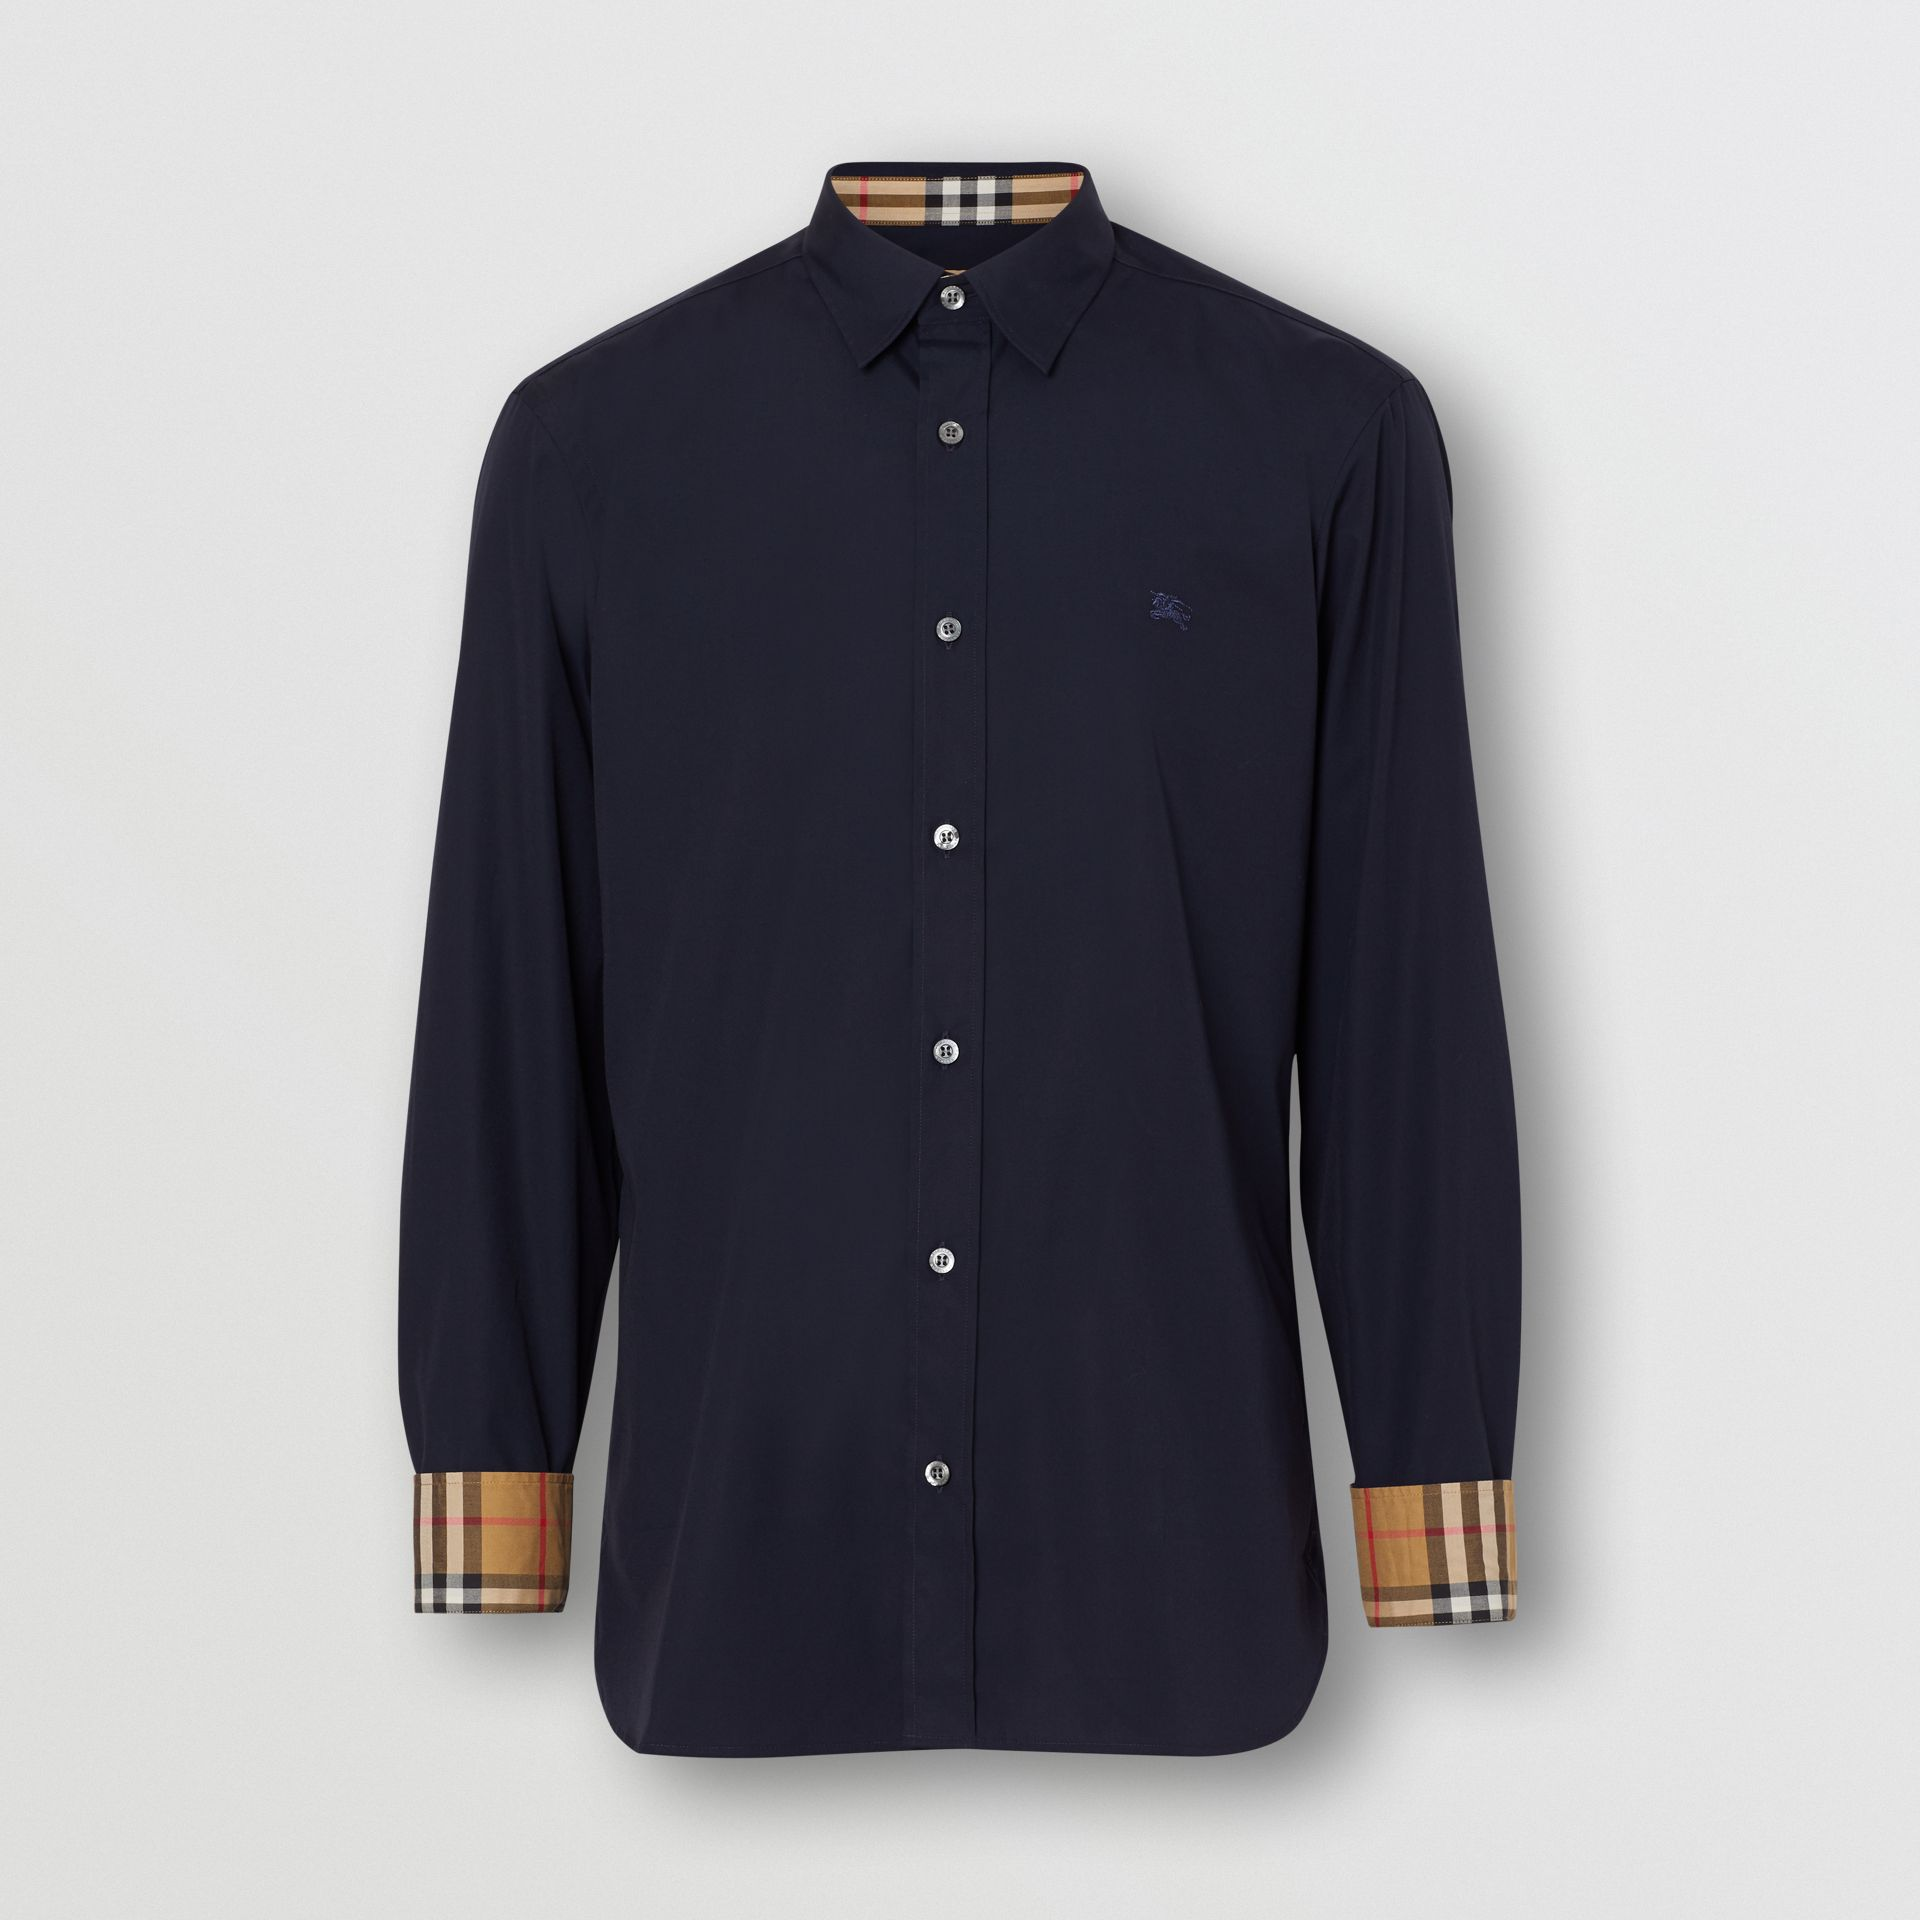 Contrast Button Stretch Cotton Shirt in Navy - Men | Burberry - gallery image 3